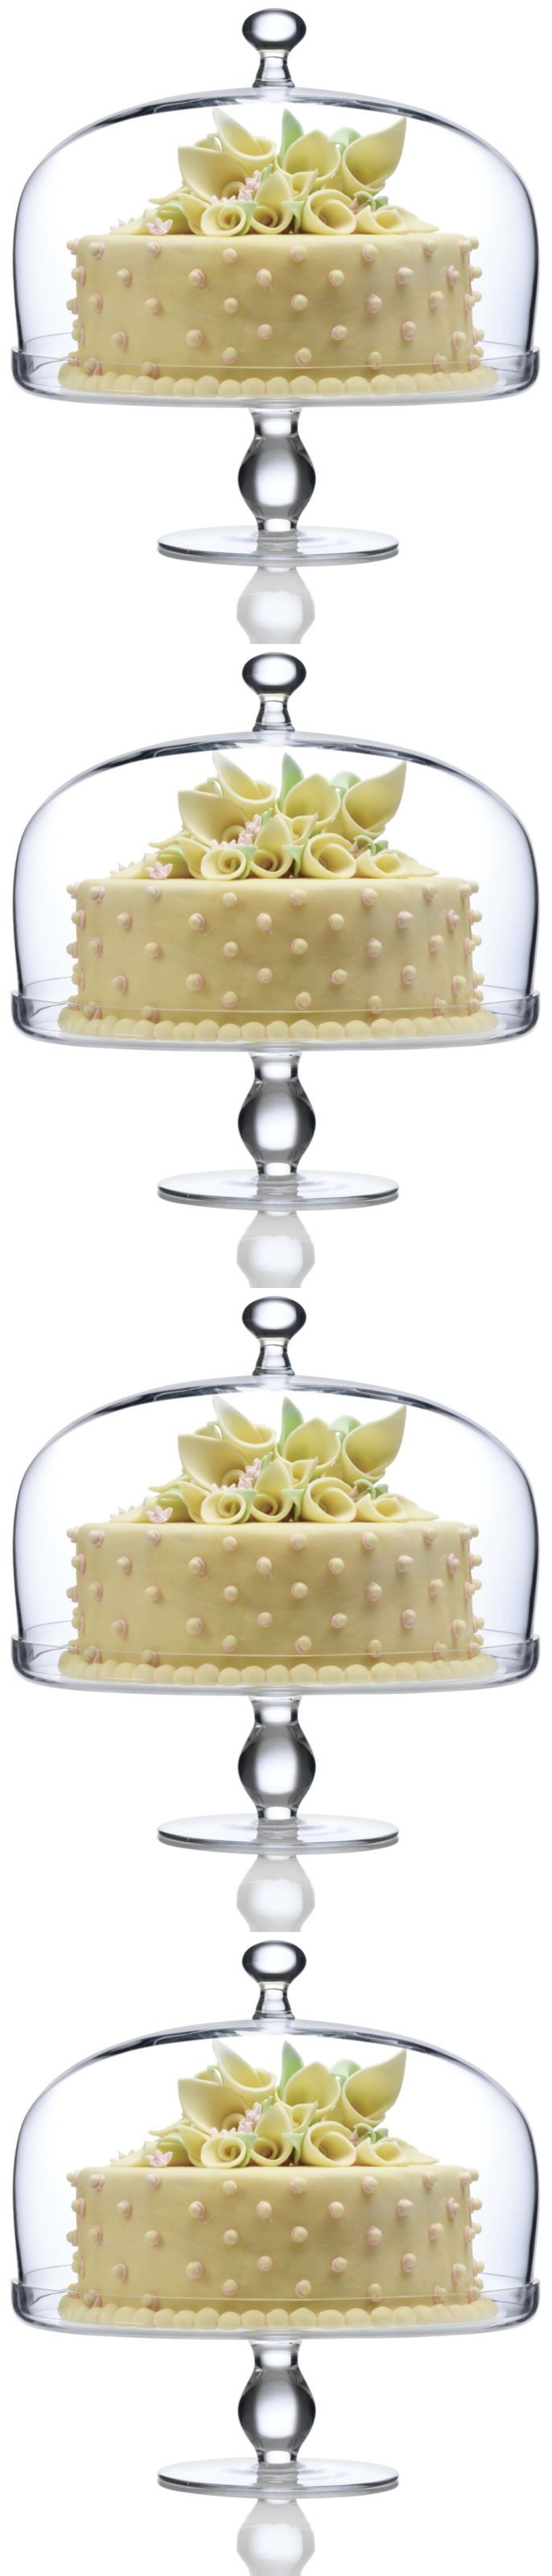 Cake Stands 177010: Luigi Bormioli Michelangelo Masterpiece Footed Cake Plate With Dome Cover -> BUY IT NOW ONLY: $58.52 on eBay!